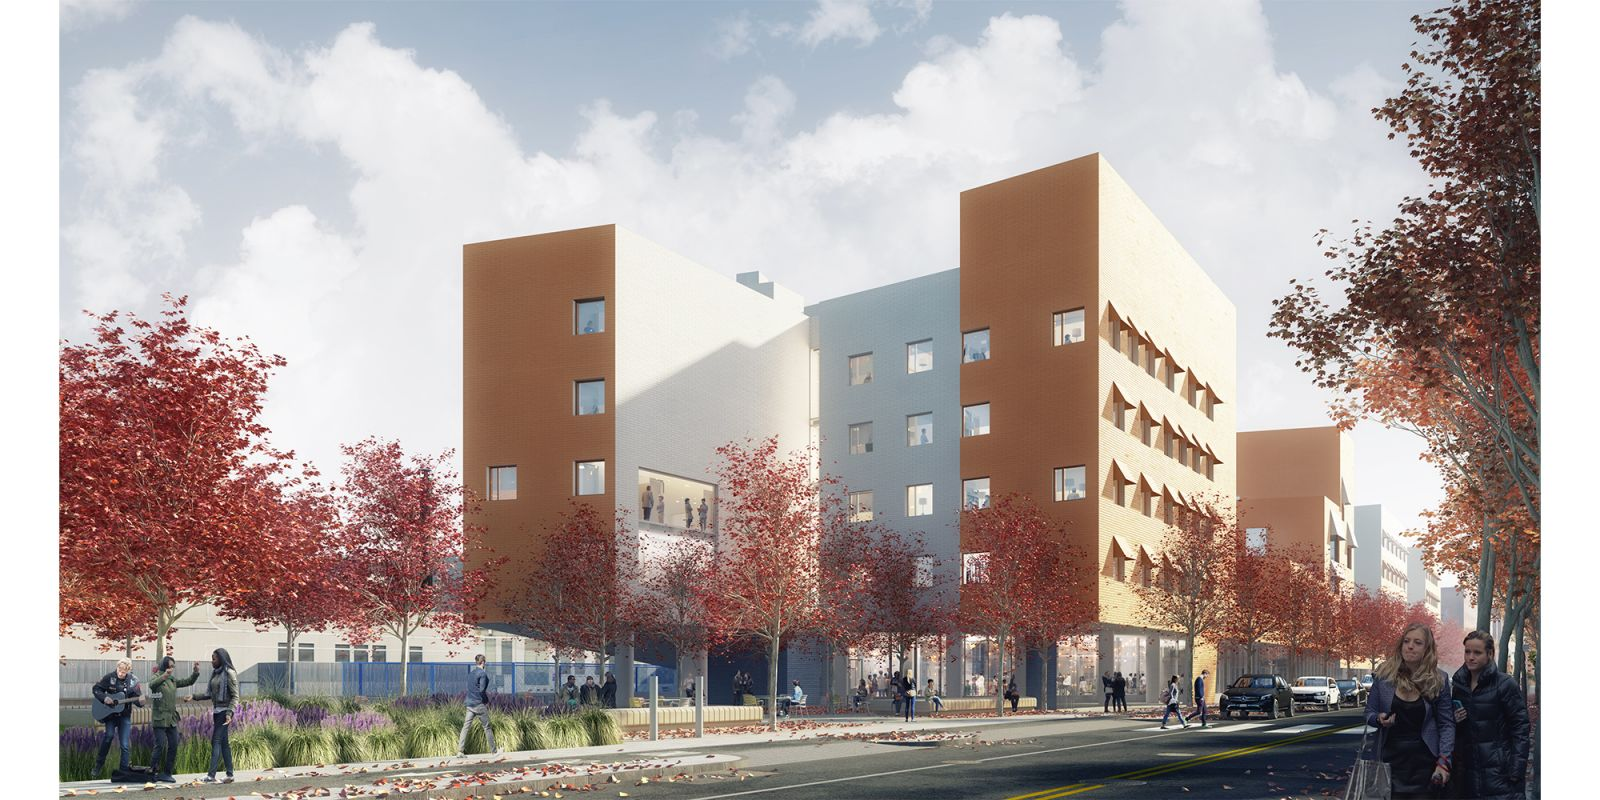 As Construction Begins On The Next Generation Vassar Street Home For MIT  Undergraduates, Lead Designer And Architecture Lecturer Michael Maltzan  Shares His ...